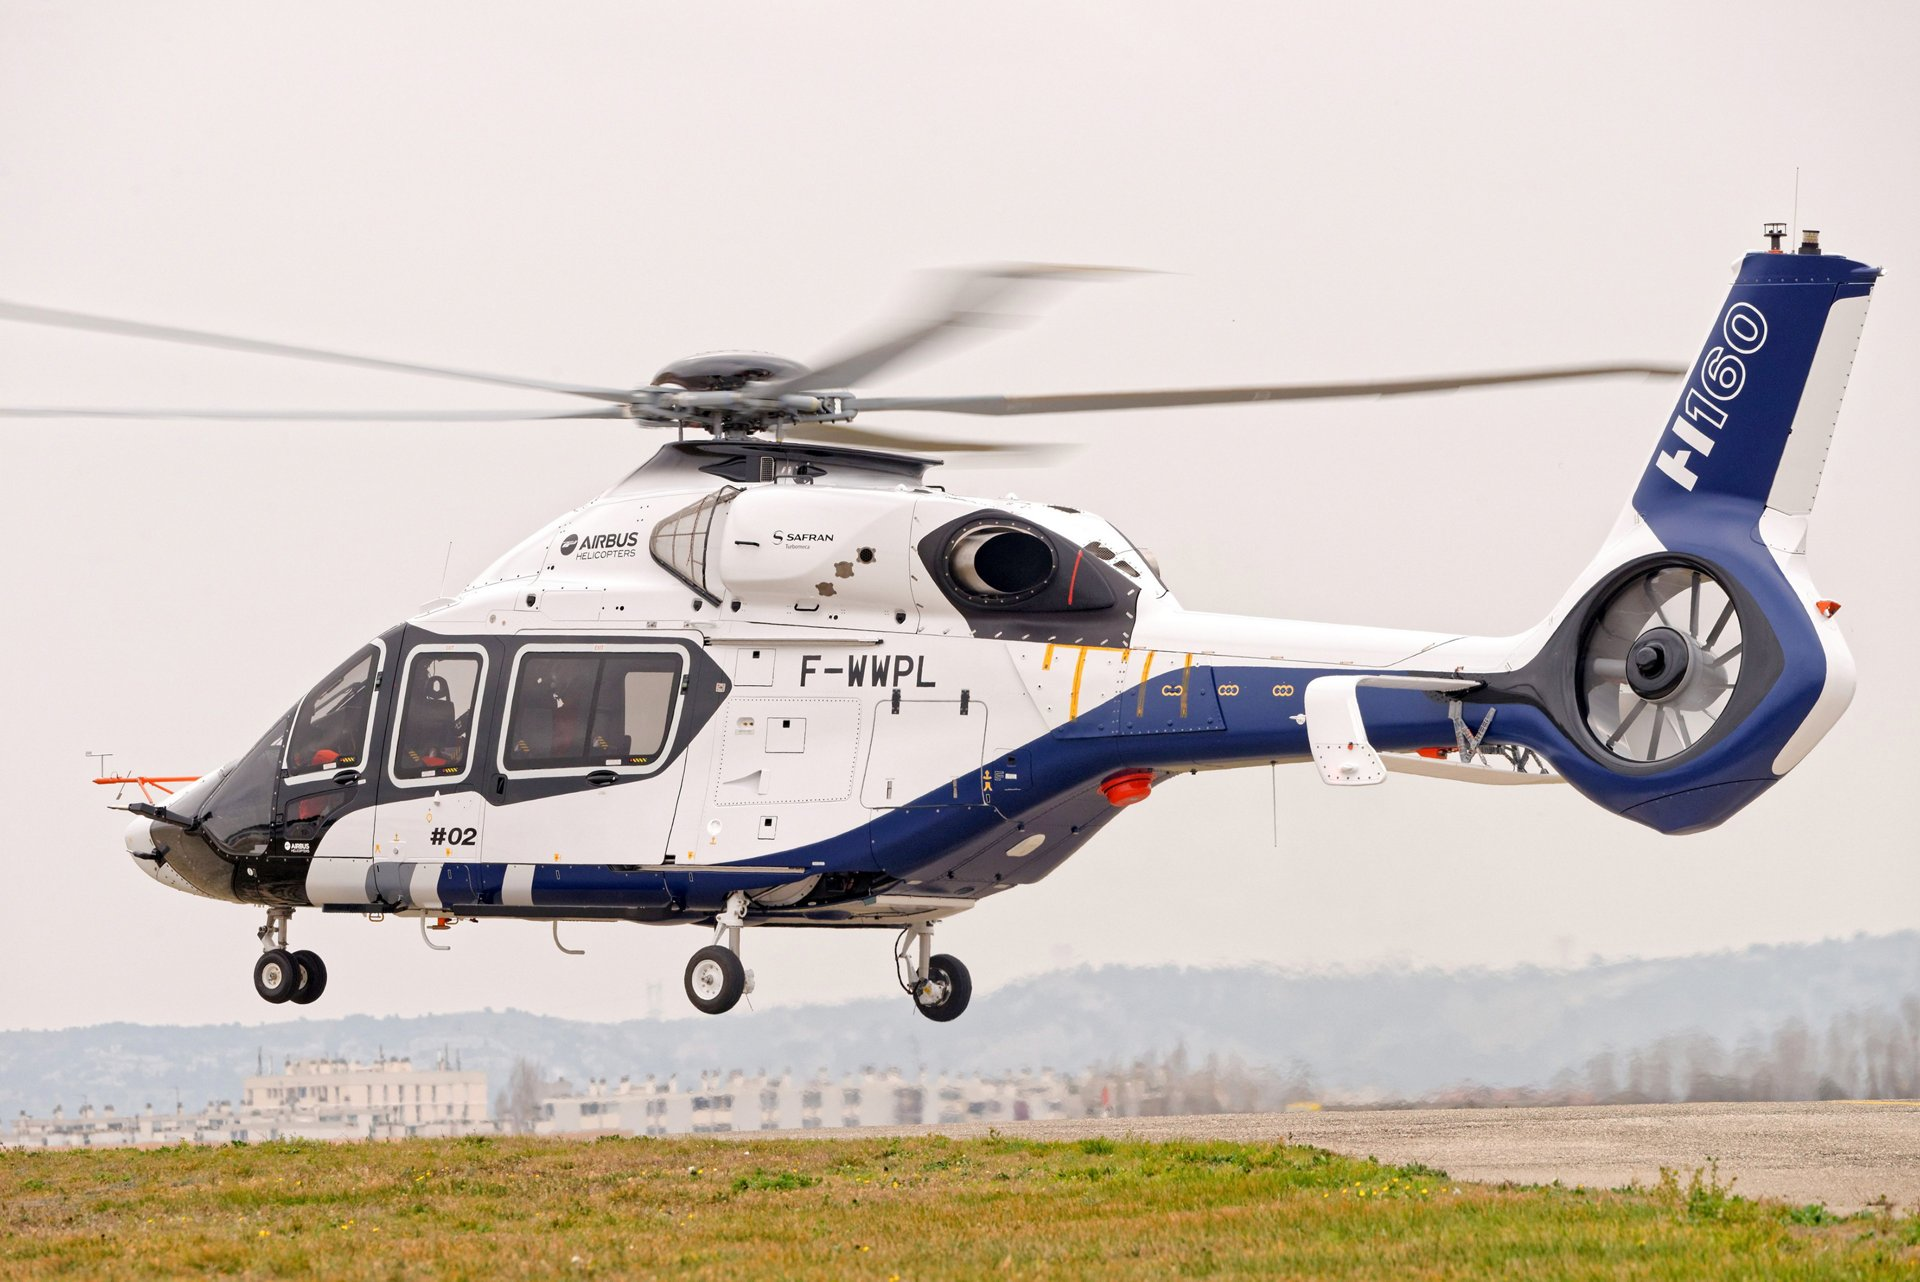 Airbus Helicopters' second H160 prototype takes off